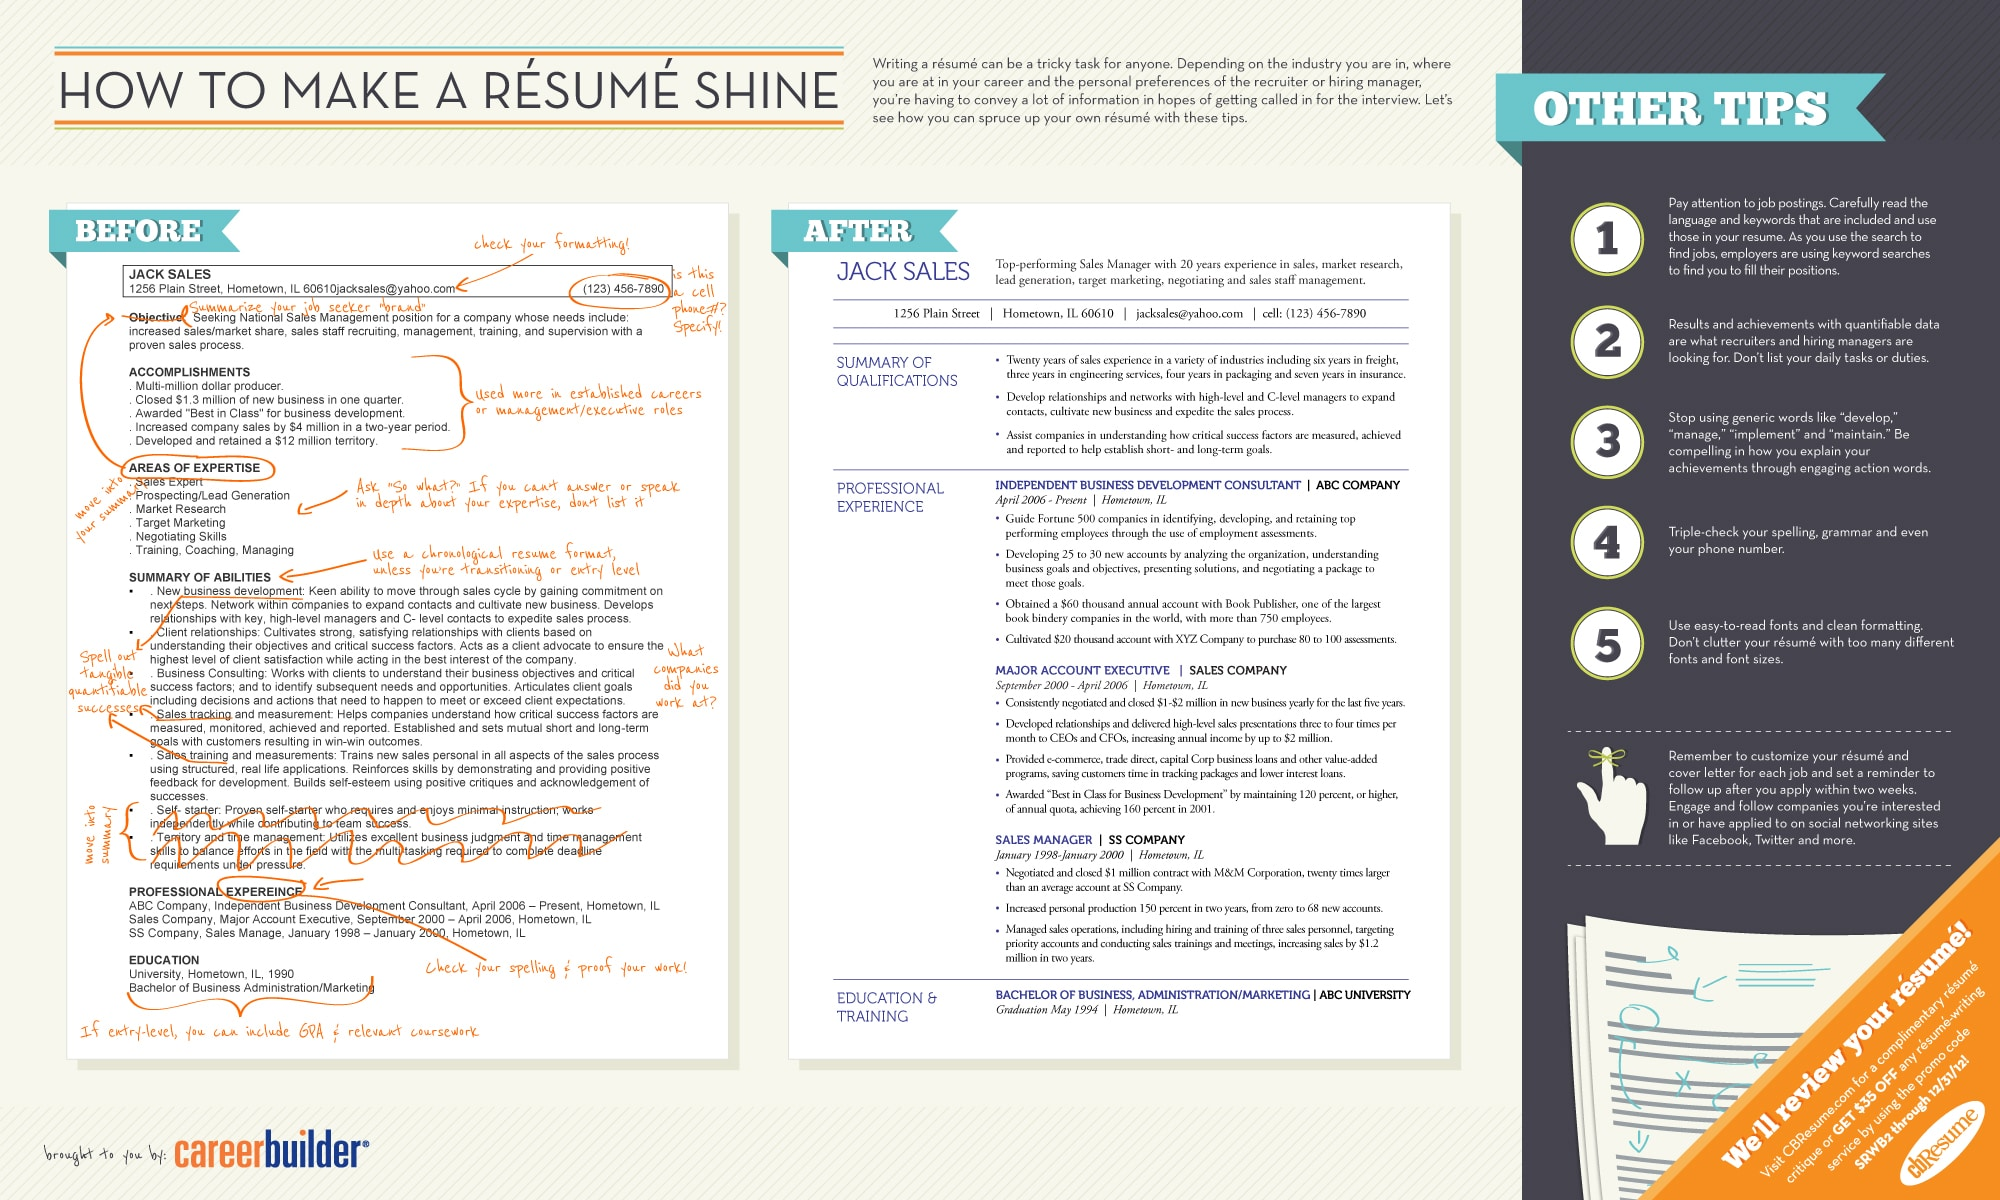 resume visual layout best online resume builder best resume resume visual layout resumup go visual get visible resume tips to help you land that job